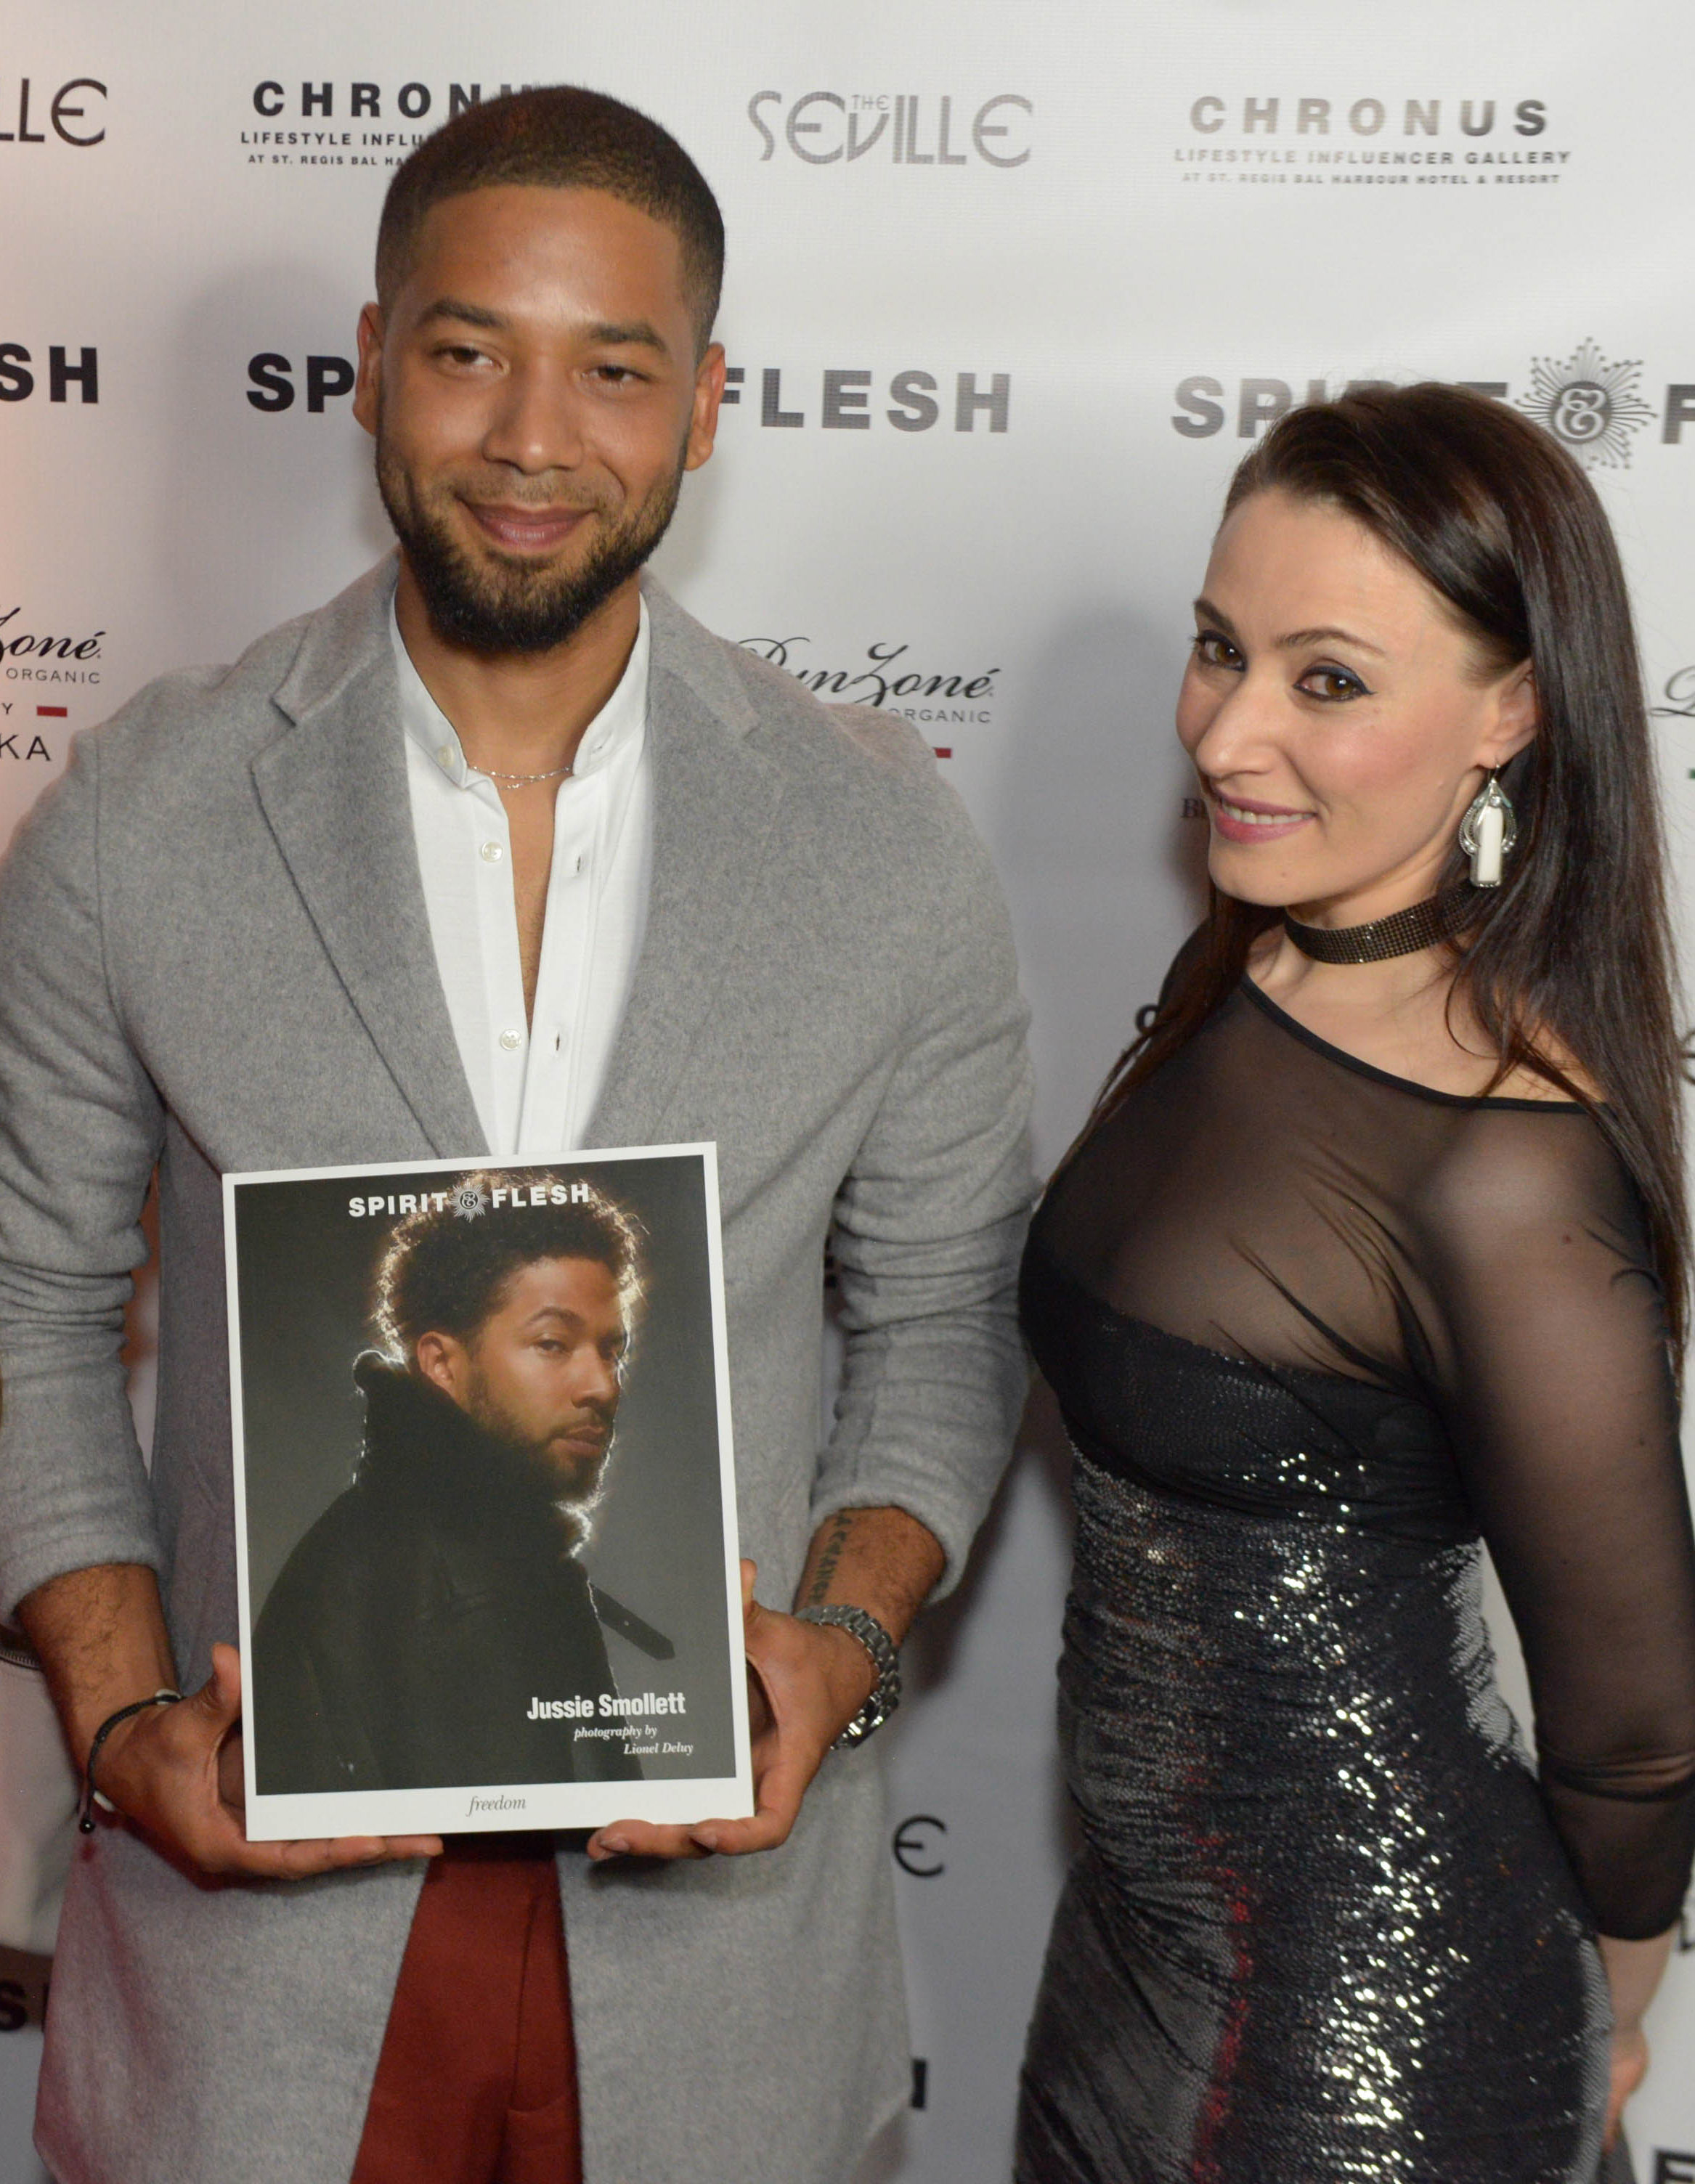 Spirit & Flesh Magazine cover event, Jussie Smollett & Yelena Deyneko by Chuck Marcus